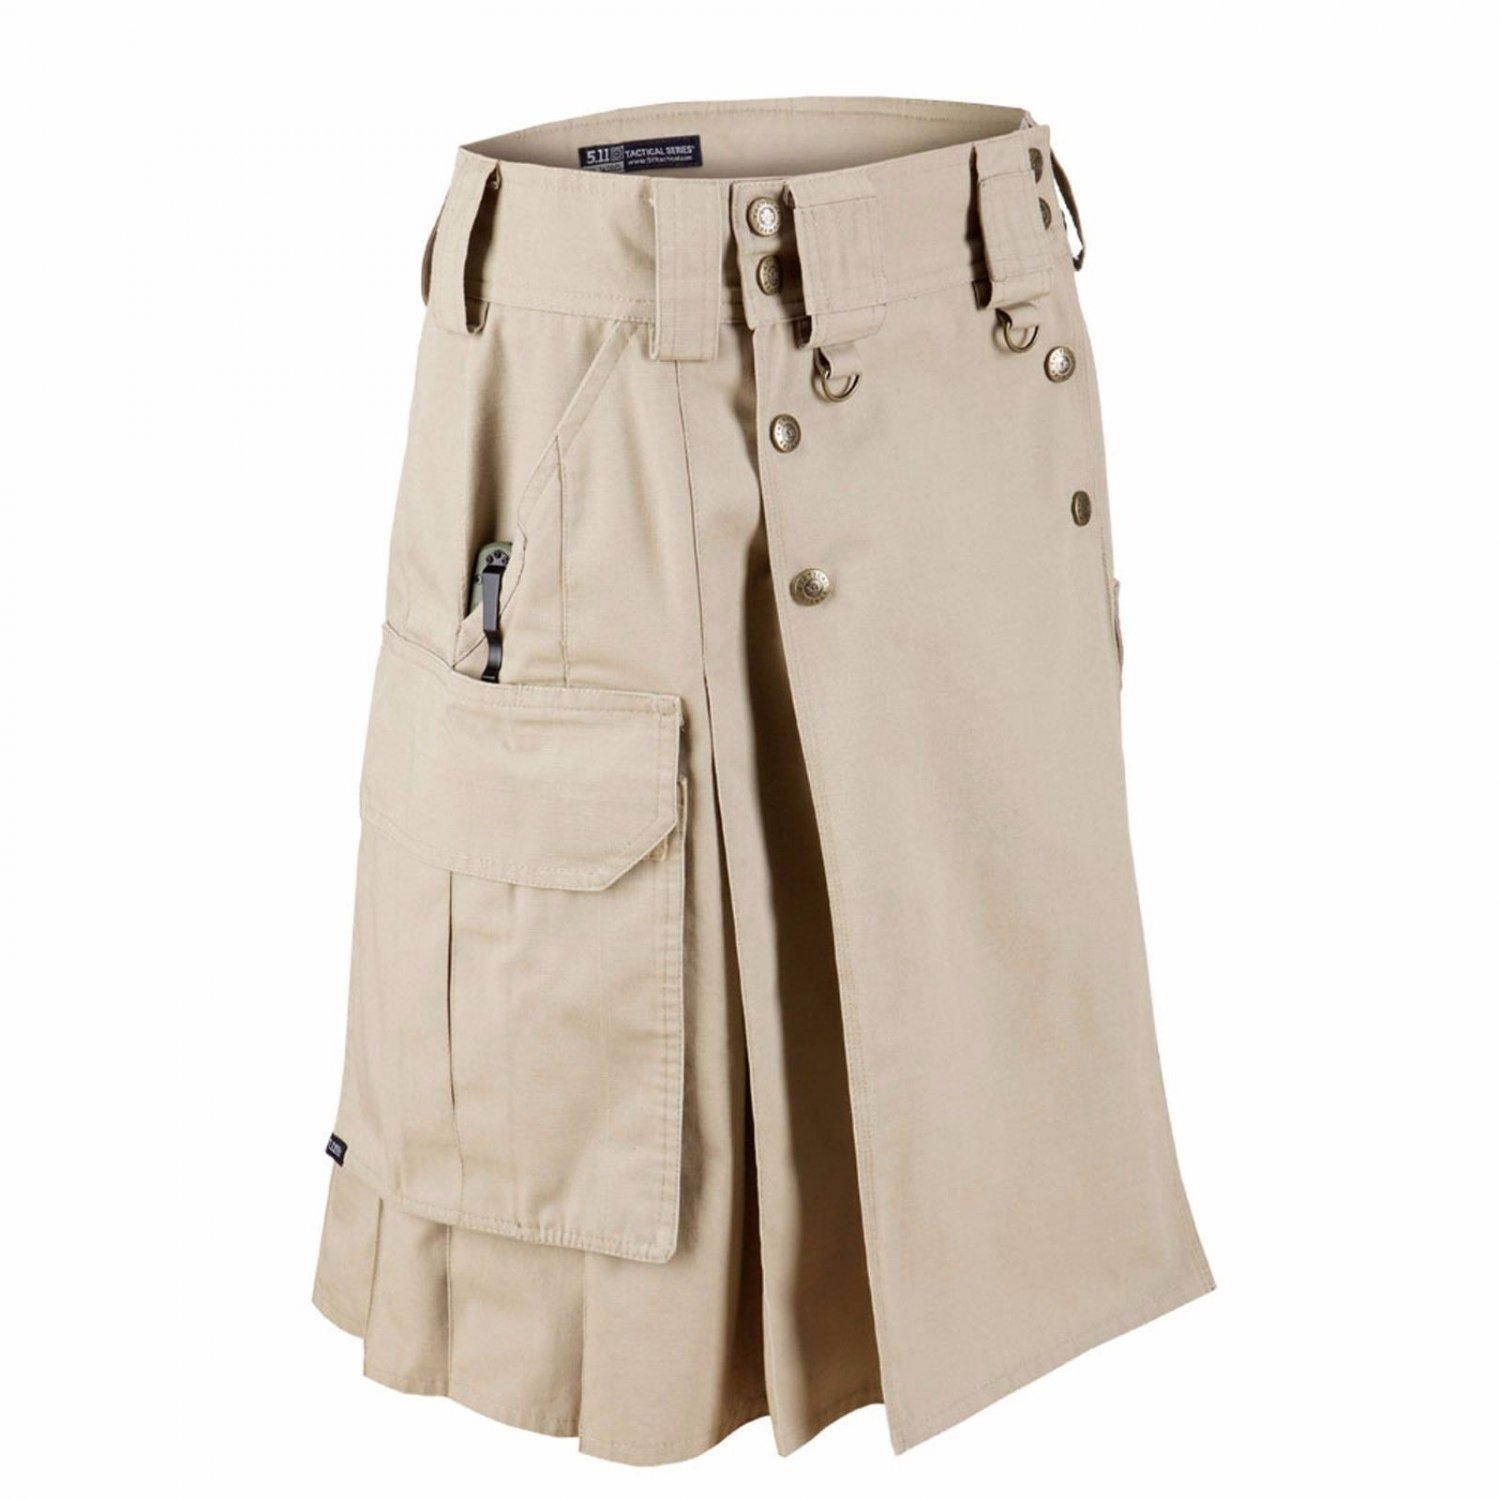 New Tactical Men,s Duty Kilt Cargo Uniform Battle Khaki Utility kilt Size 30